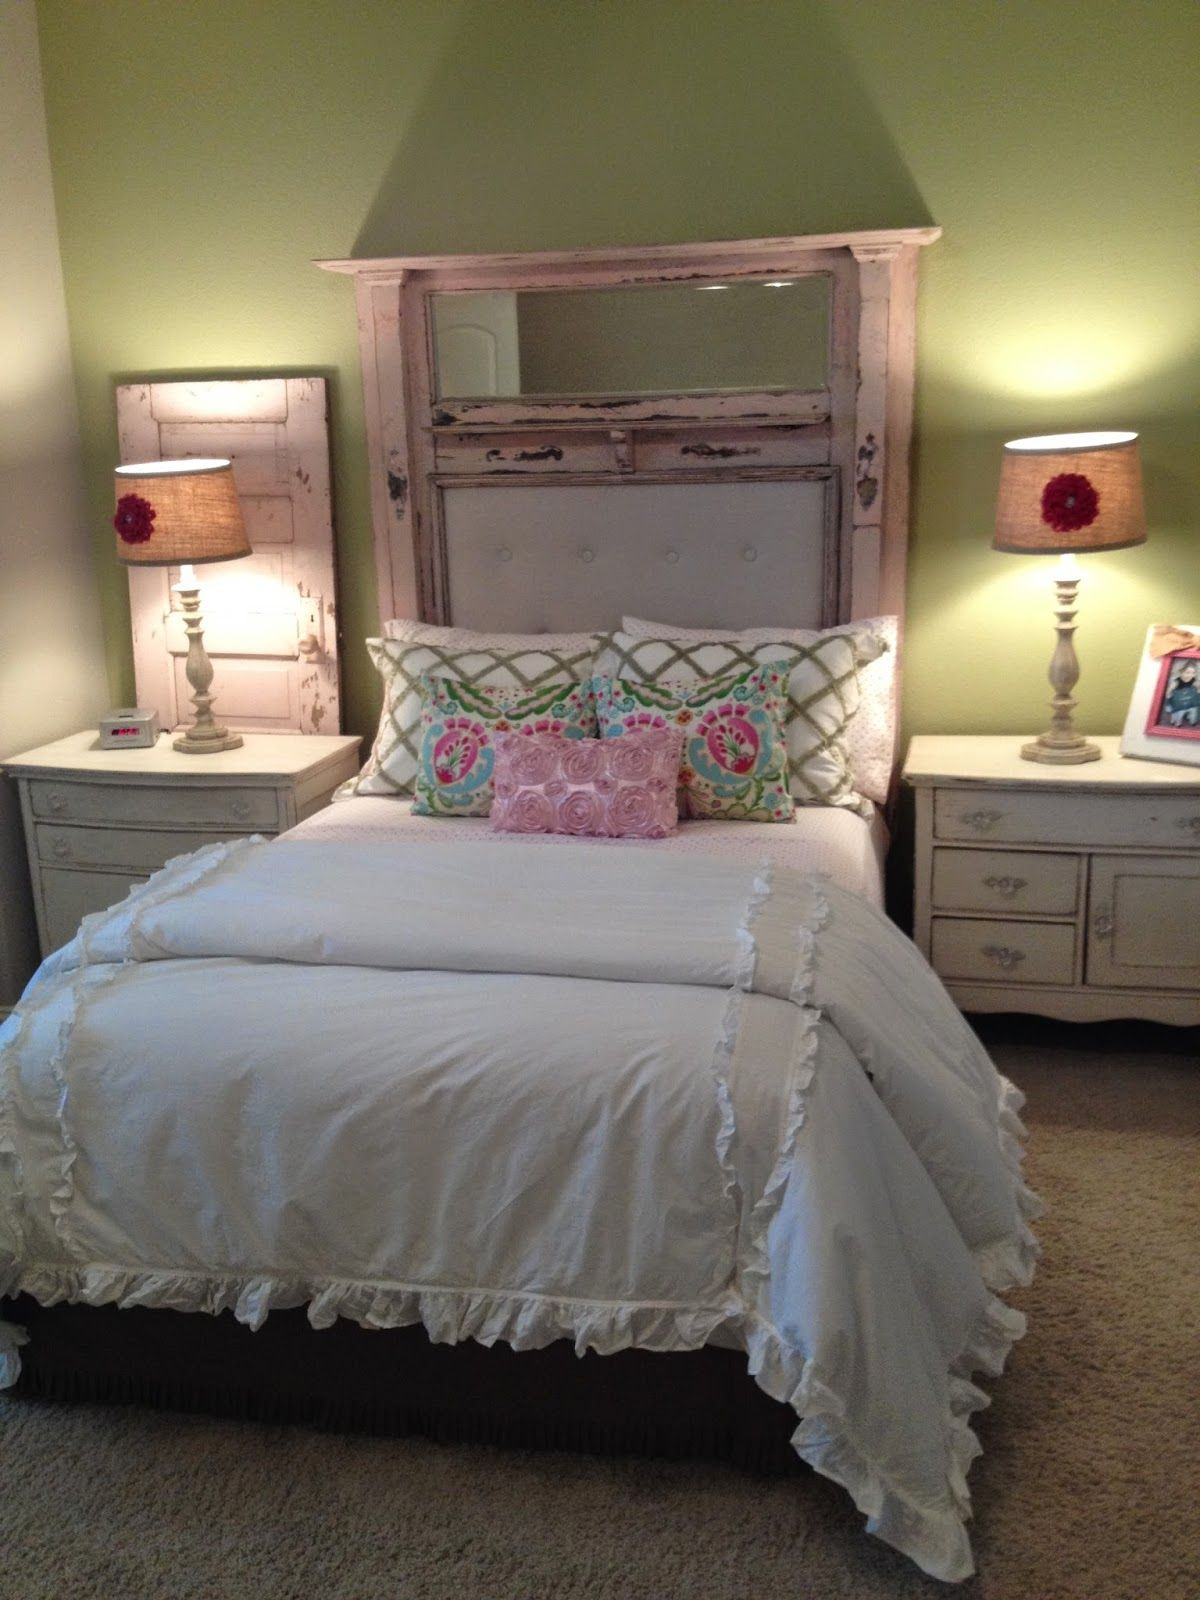 Averyus Pink Tufted Mantle Headboard HOW TO M is for Mantles